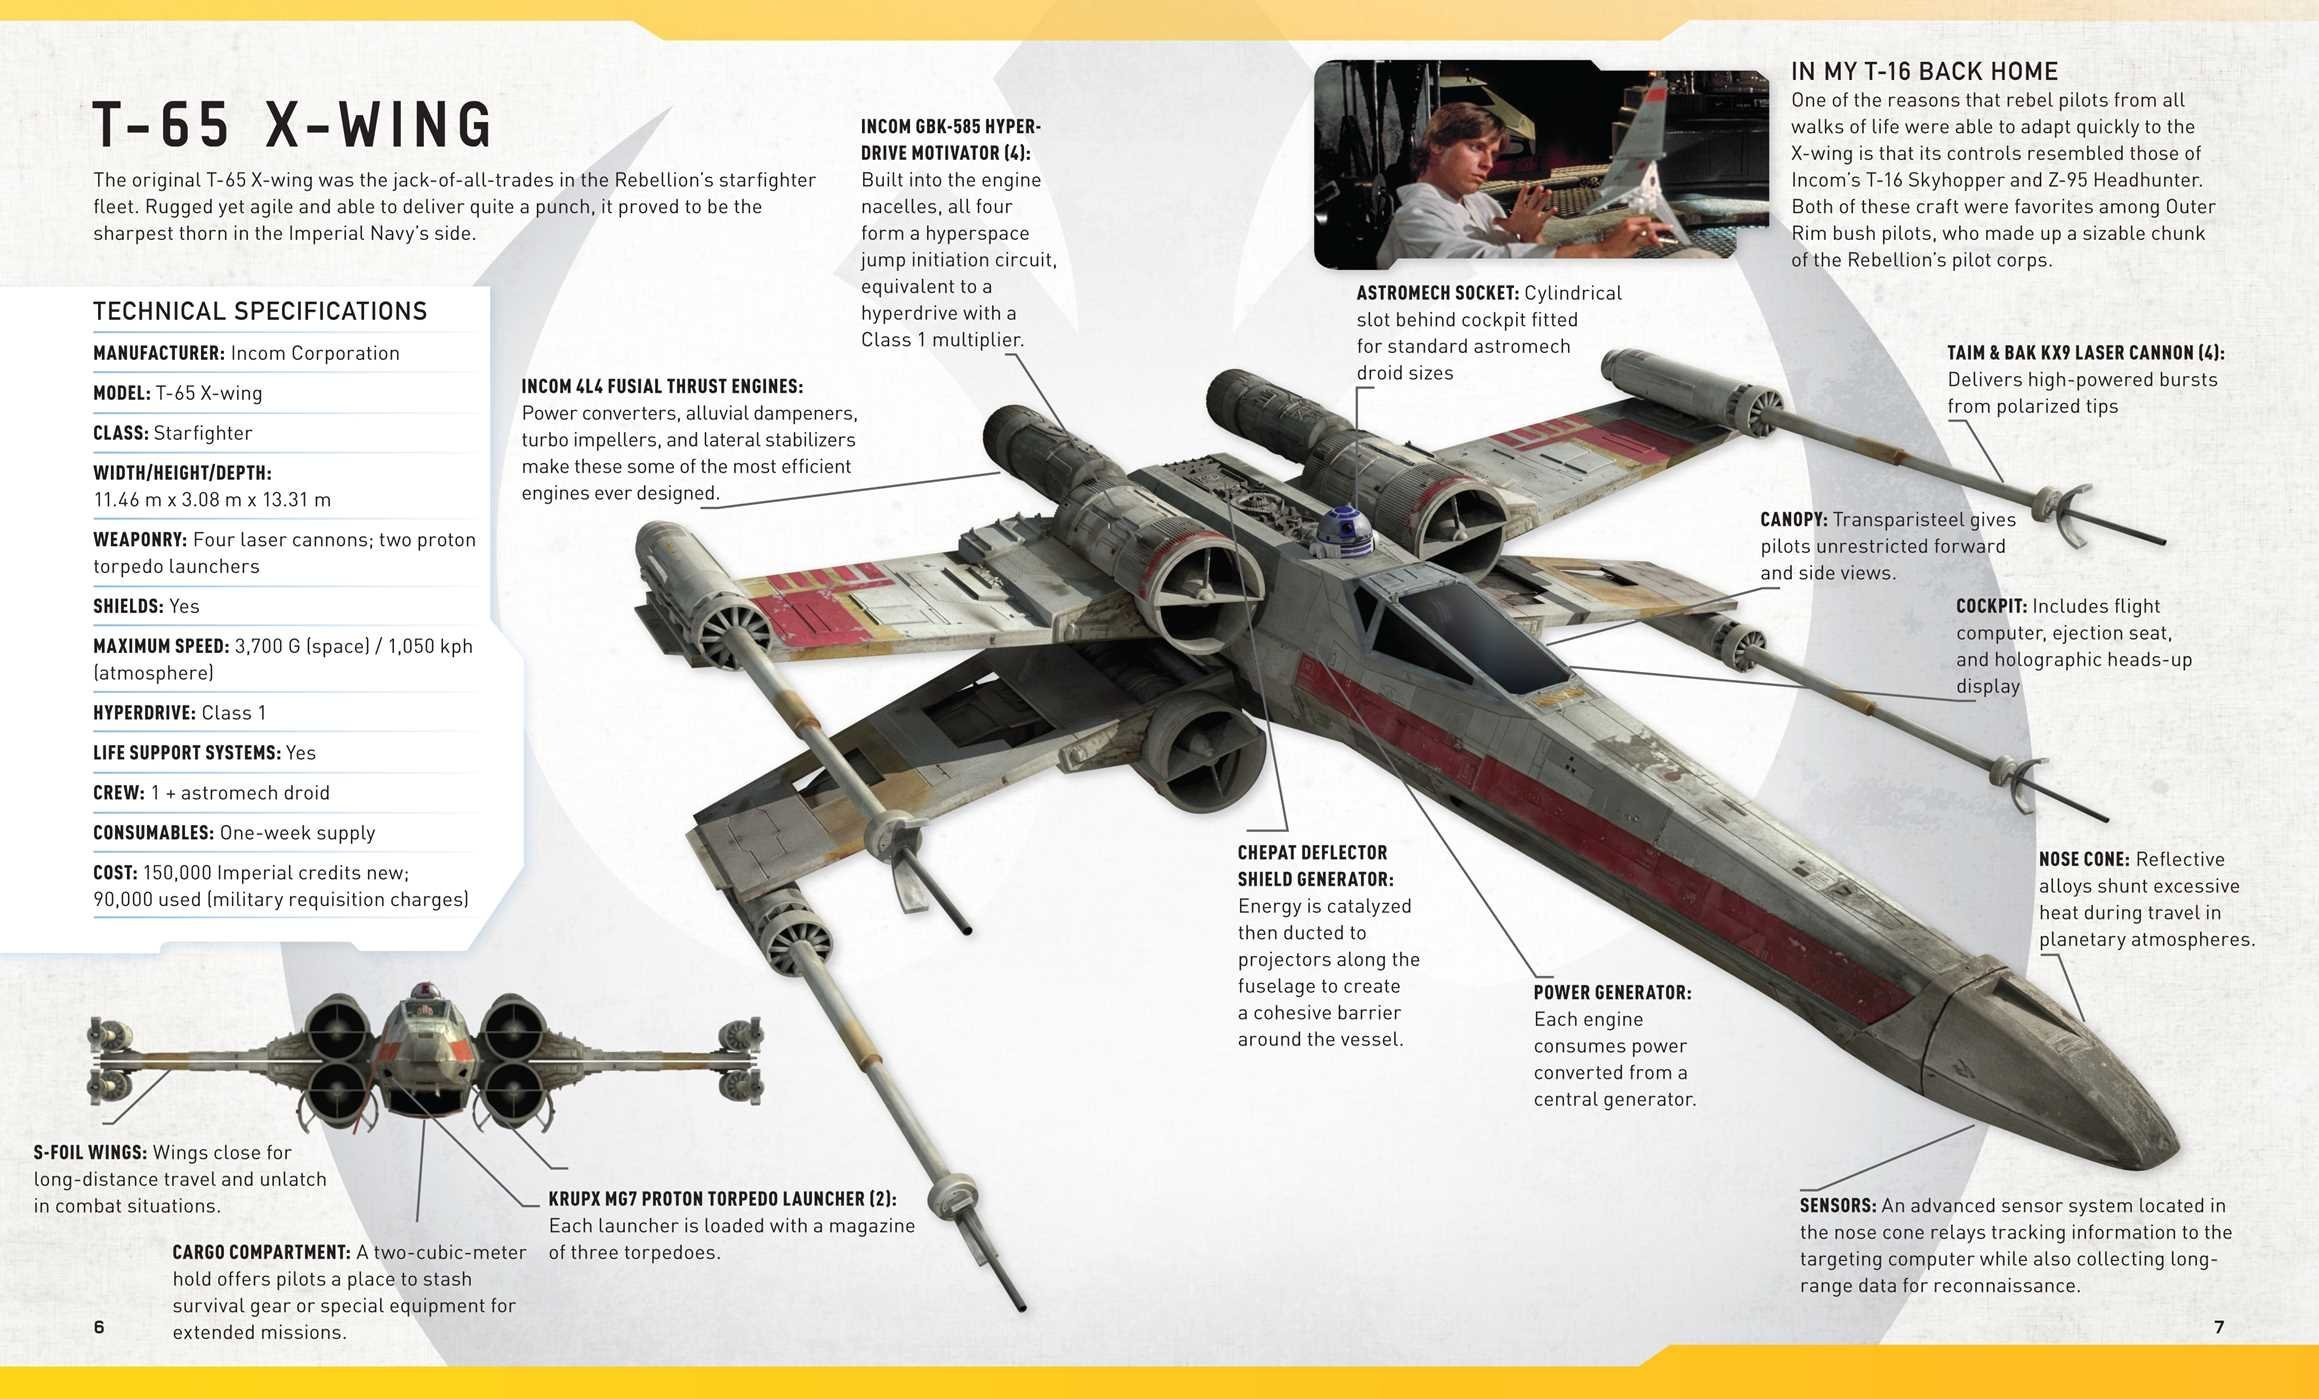 INCREDIBUILDS: STAR WARS: X-WING DELUXE BOOK AND MODEL SET: Amazon.de:  MICHAEL KOGGE: Fremdsprachige Bücher